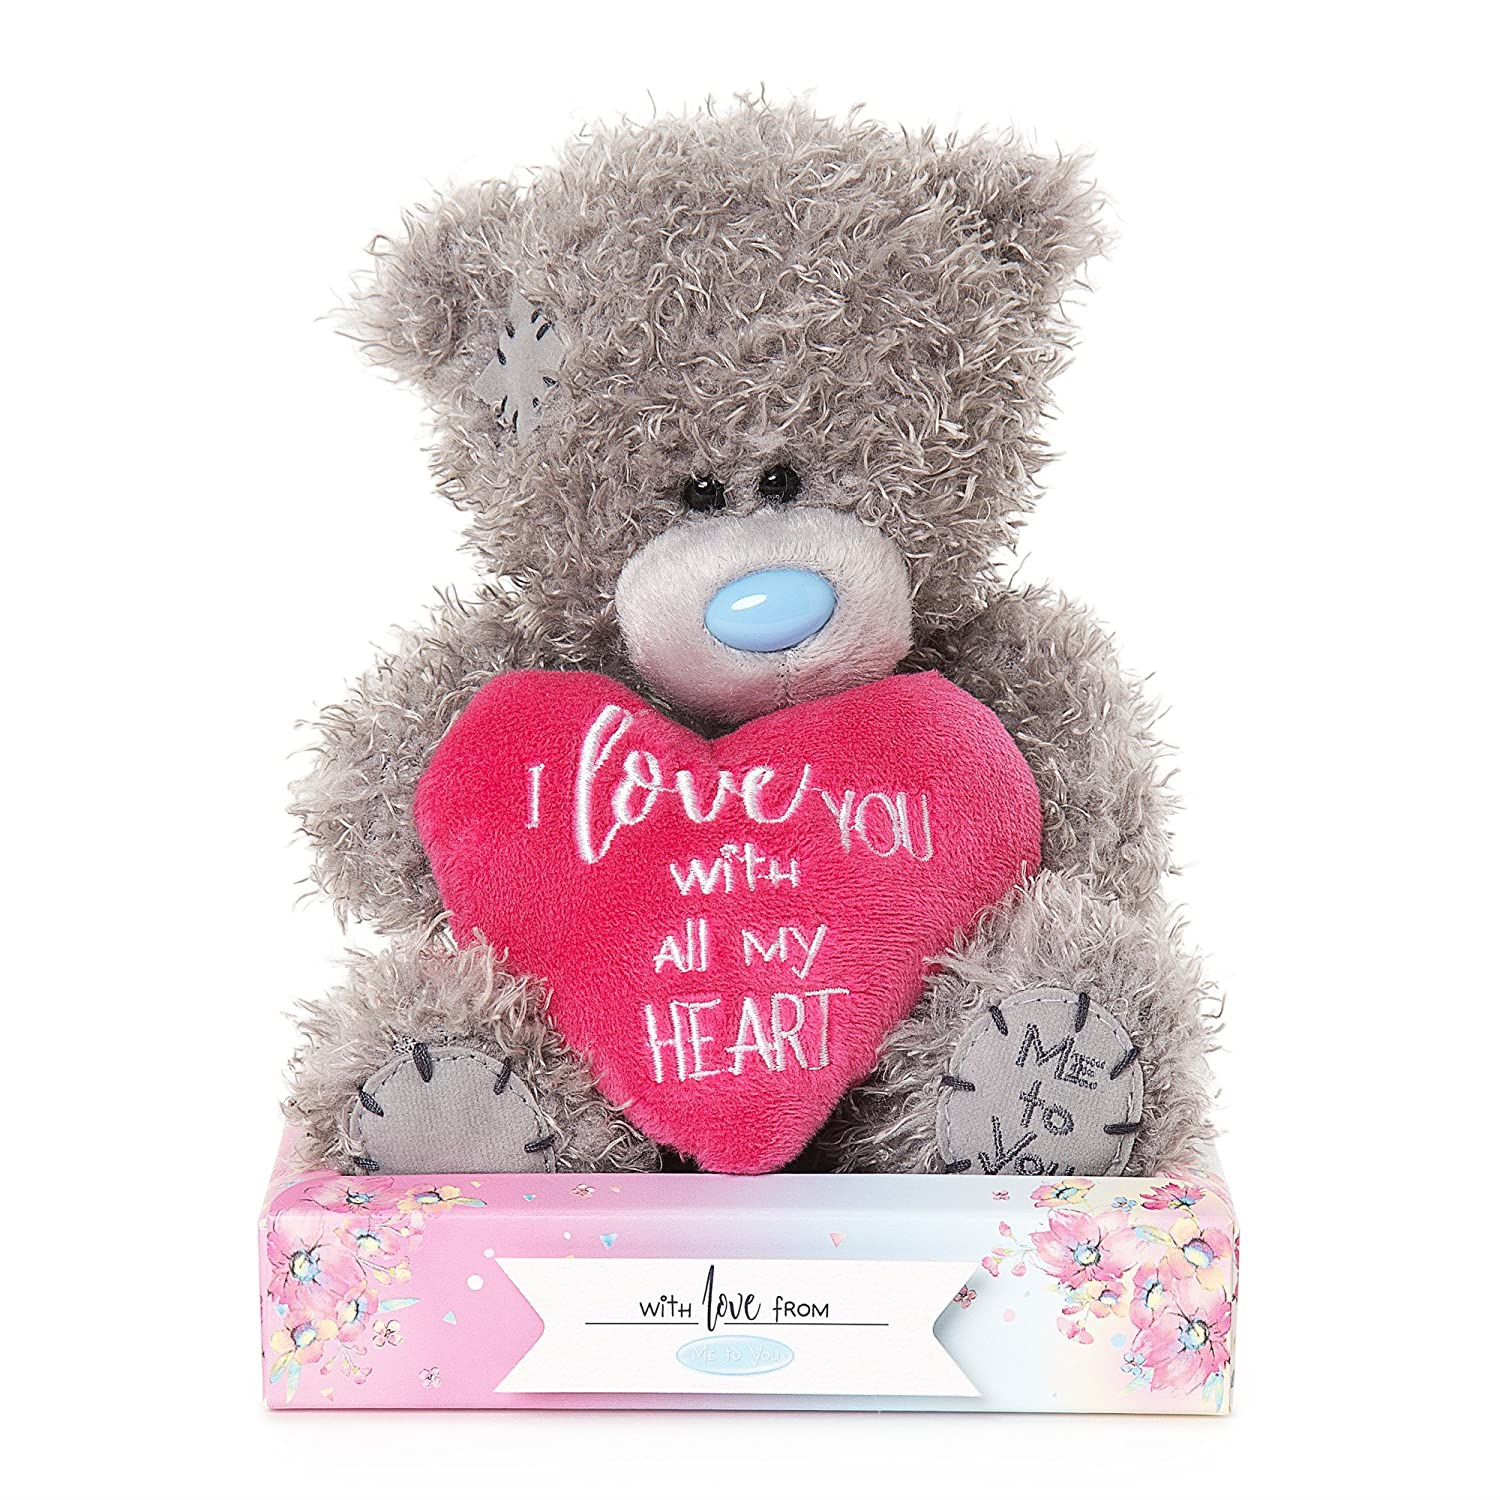 Me To You - Oso de Peluche con Texto en Inglés I Love You: Amazon.es: Juguetes y juegos